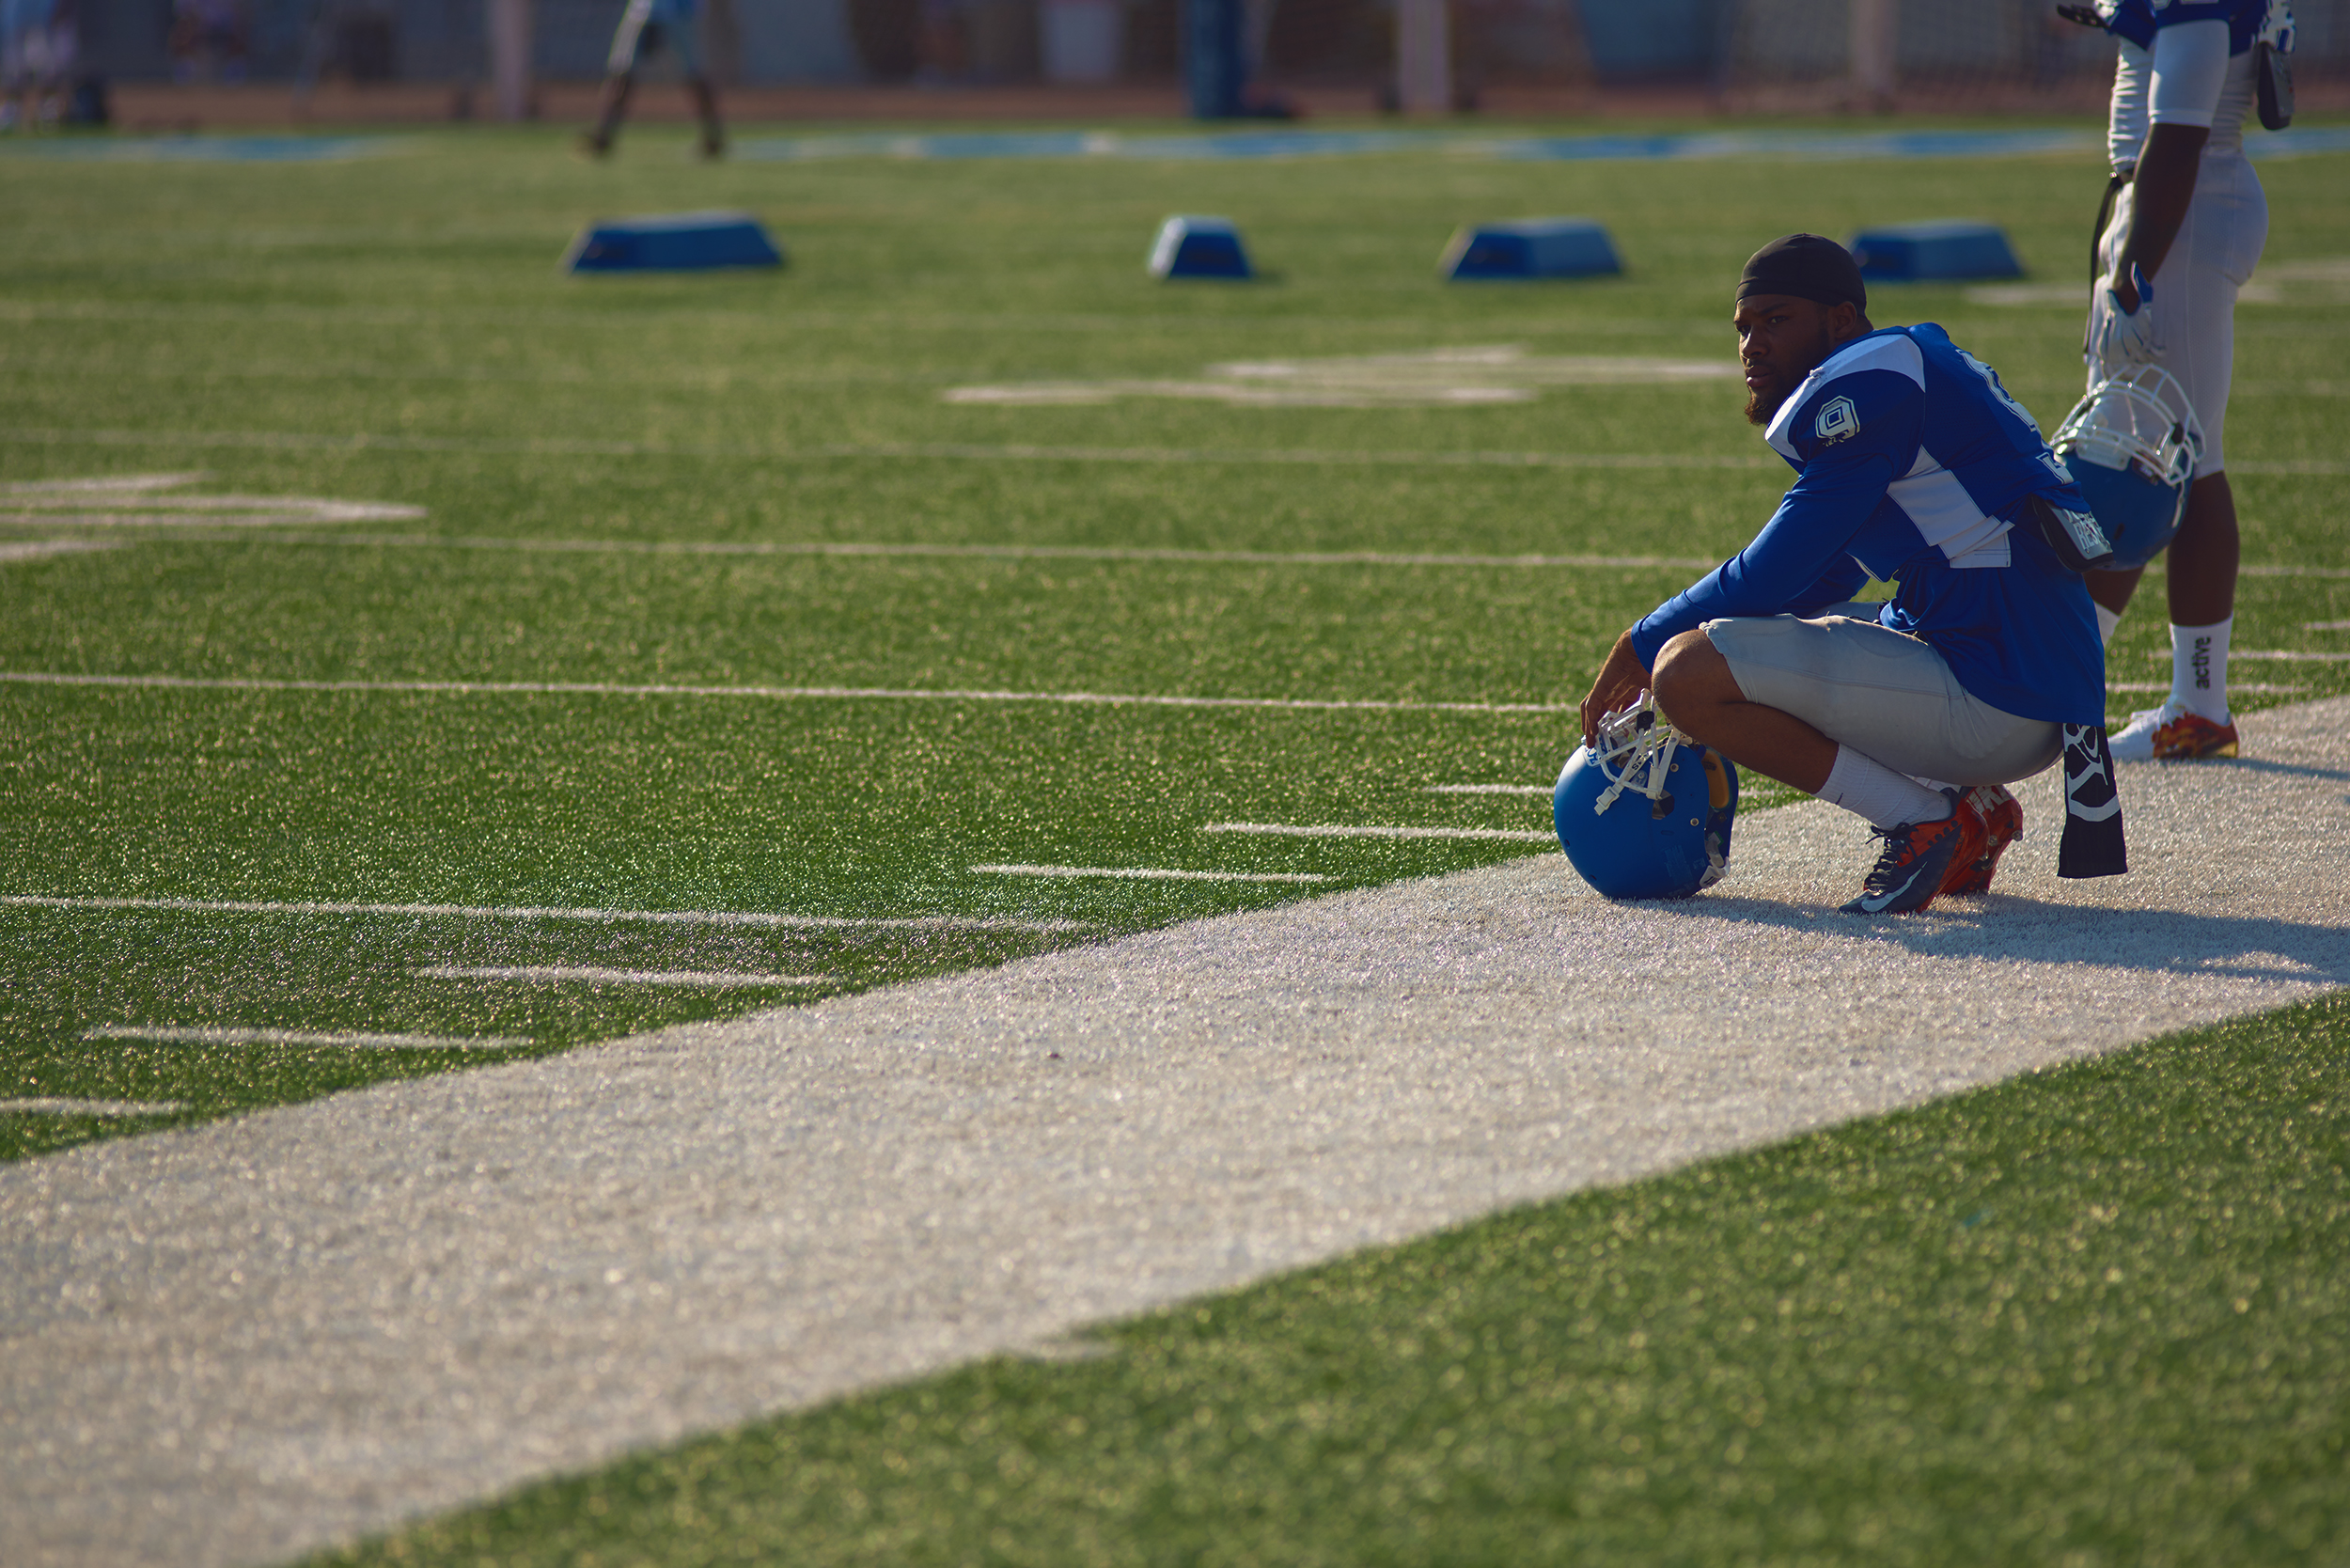 football for book low resDSC_6039 3.jpg